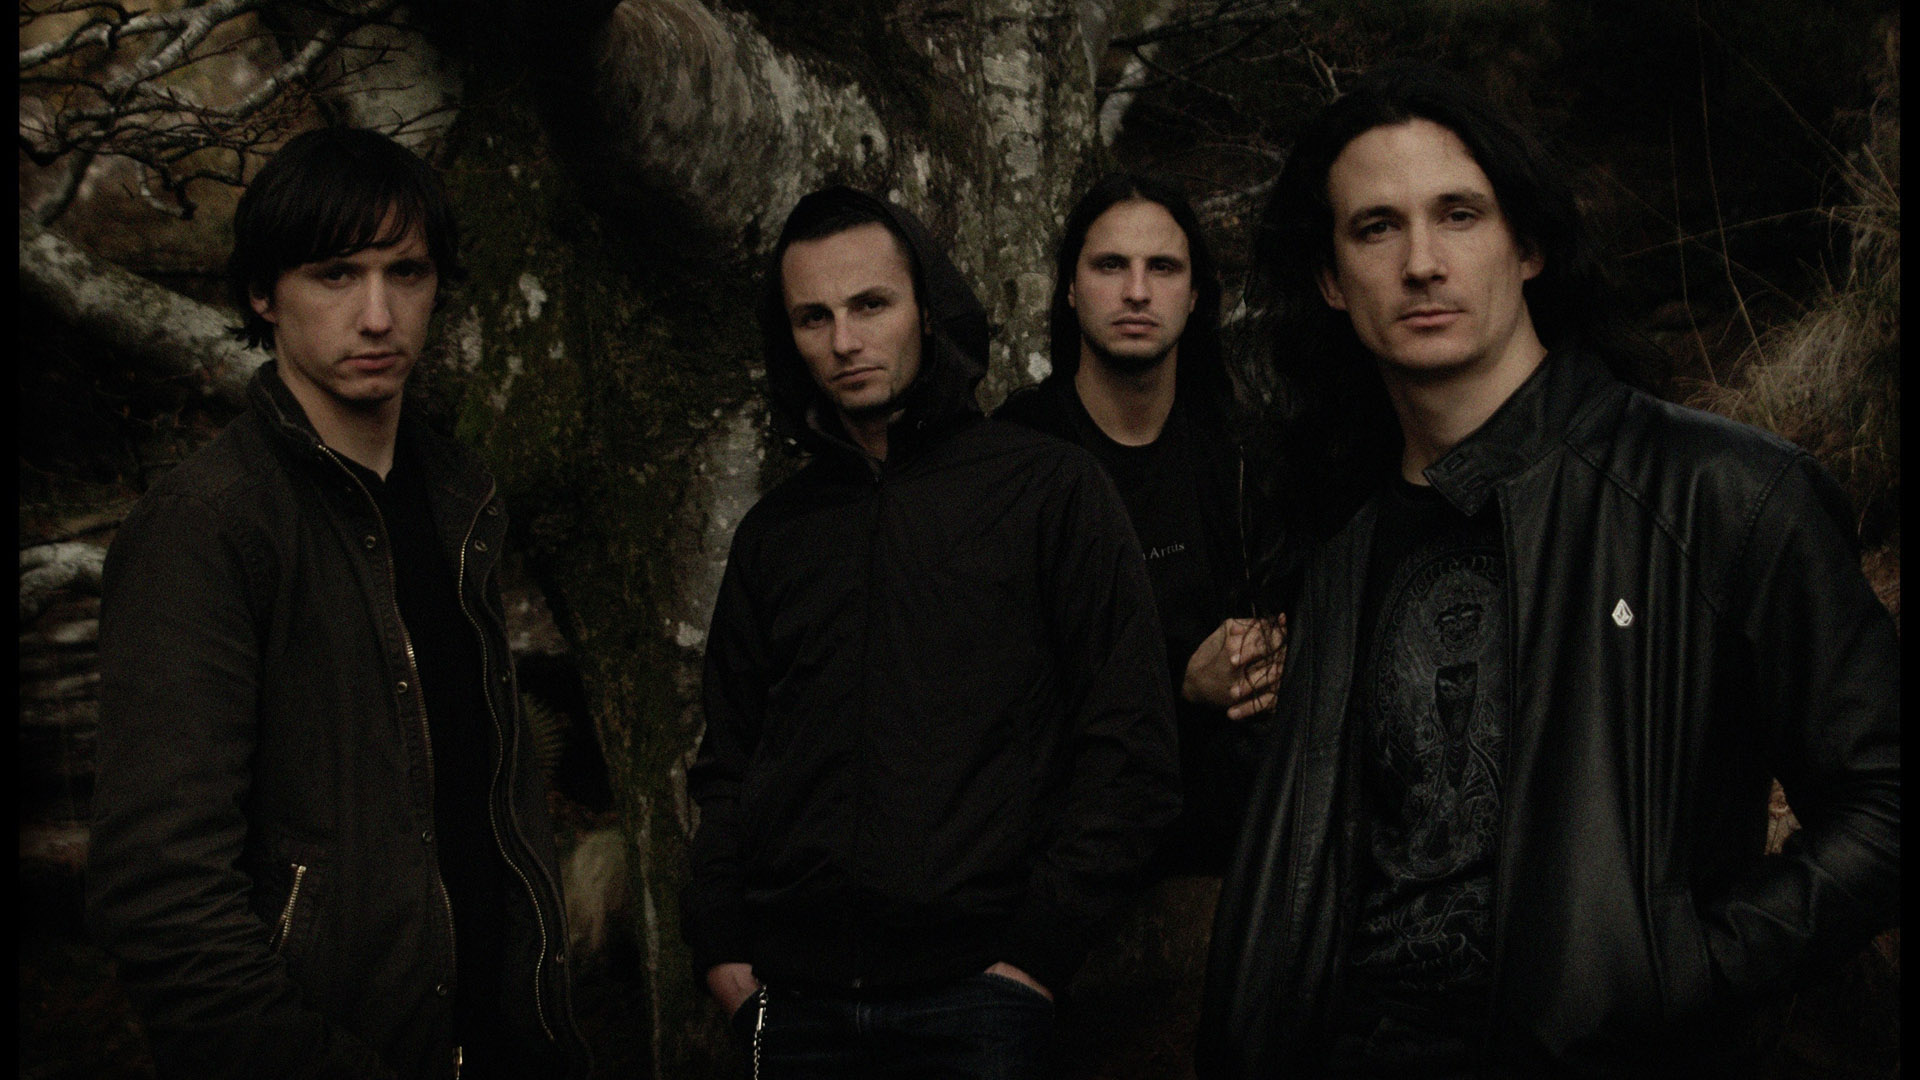 Gojira hd wallpaper background image 1920x1080 id 199454 wallpaper abyss - Gojira band wallpaper ...